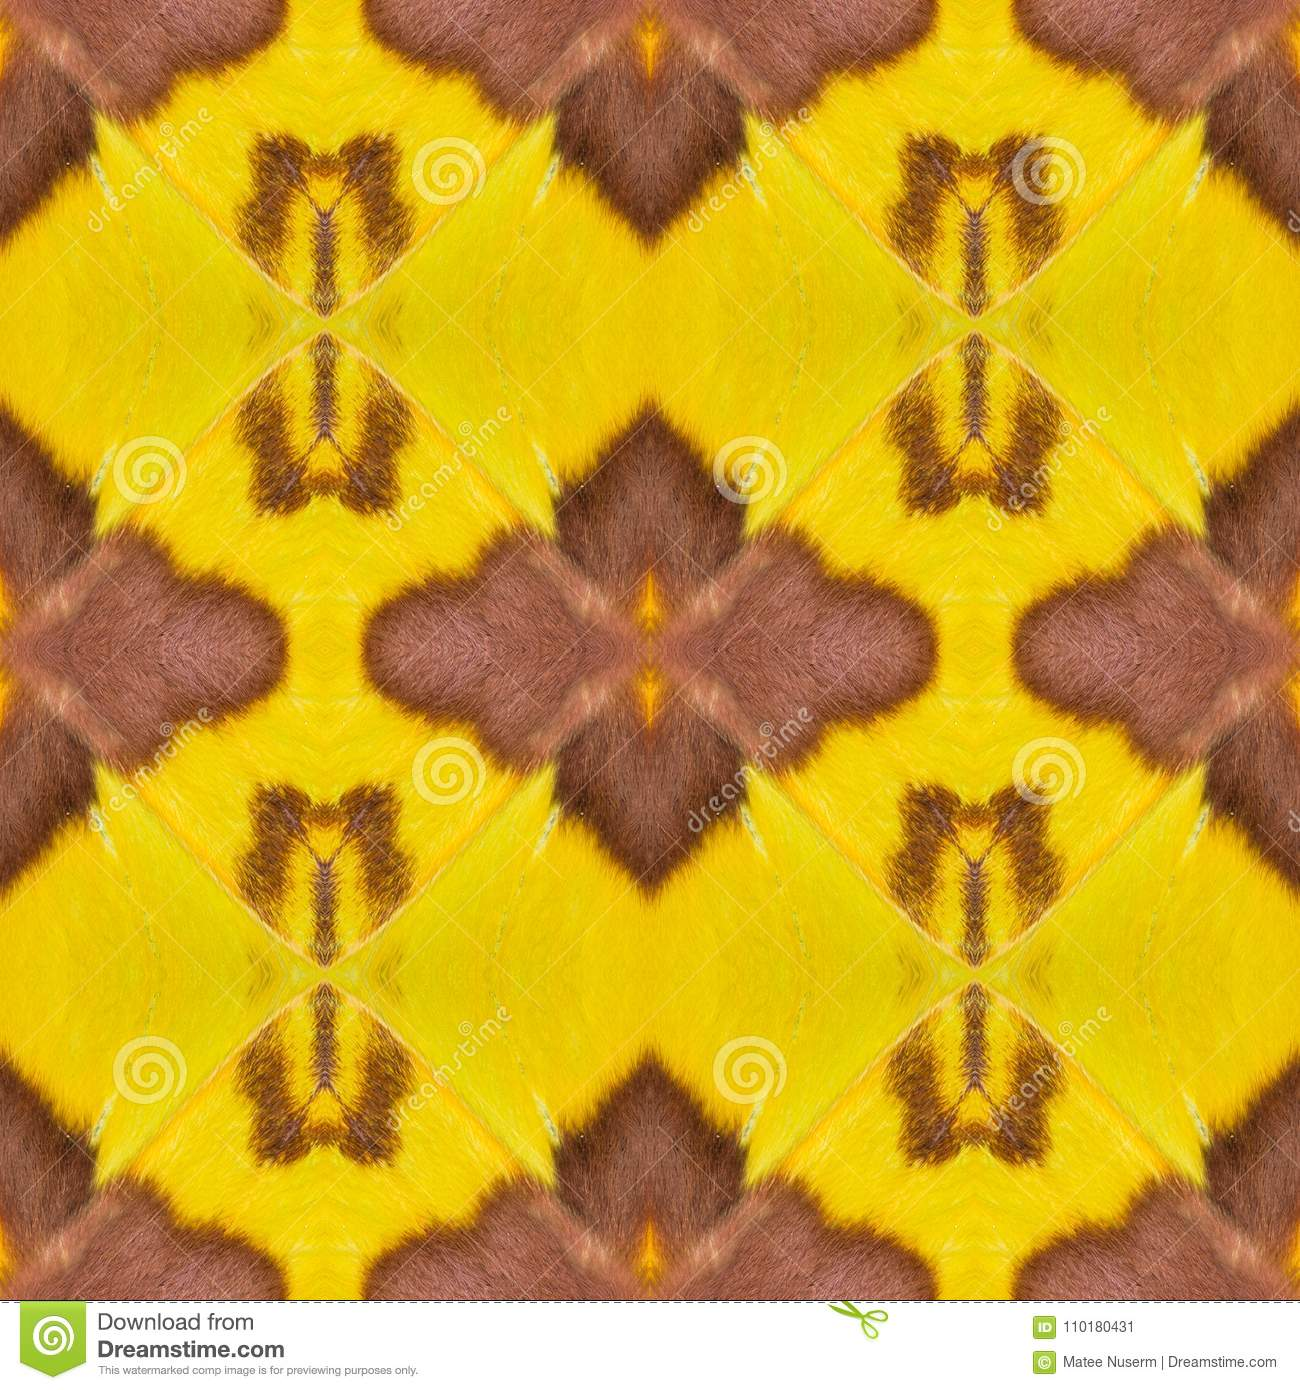 Background created from moth wings